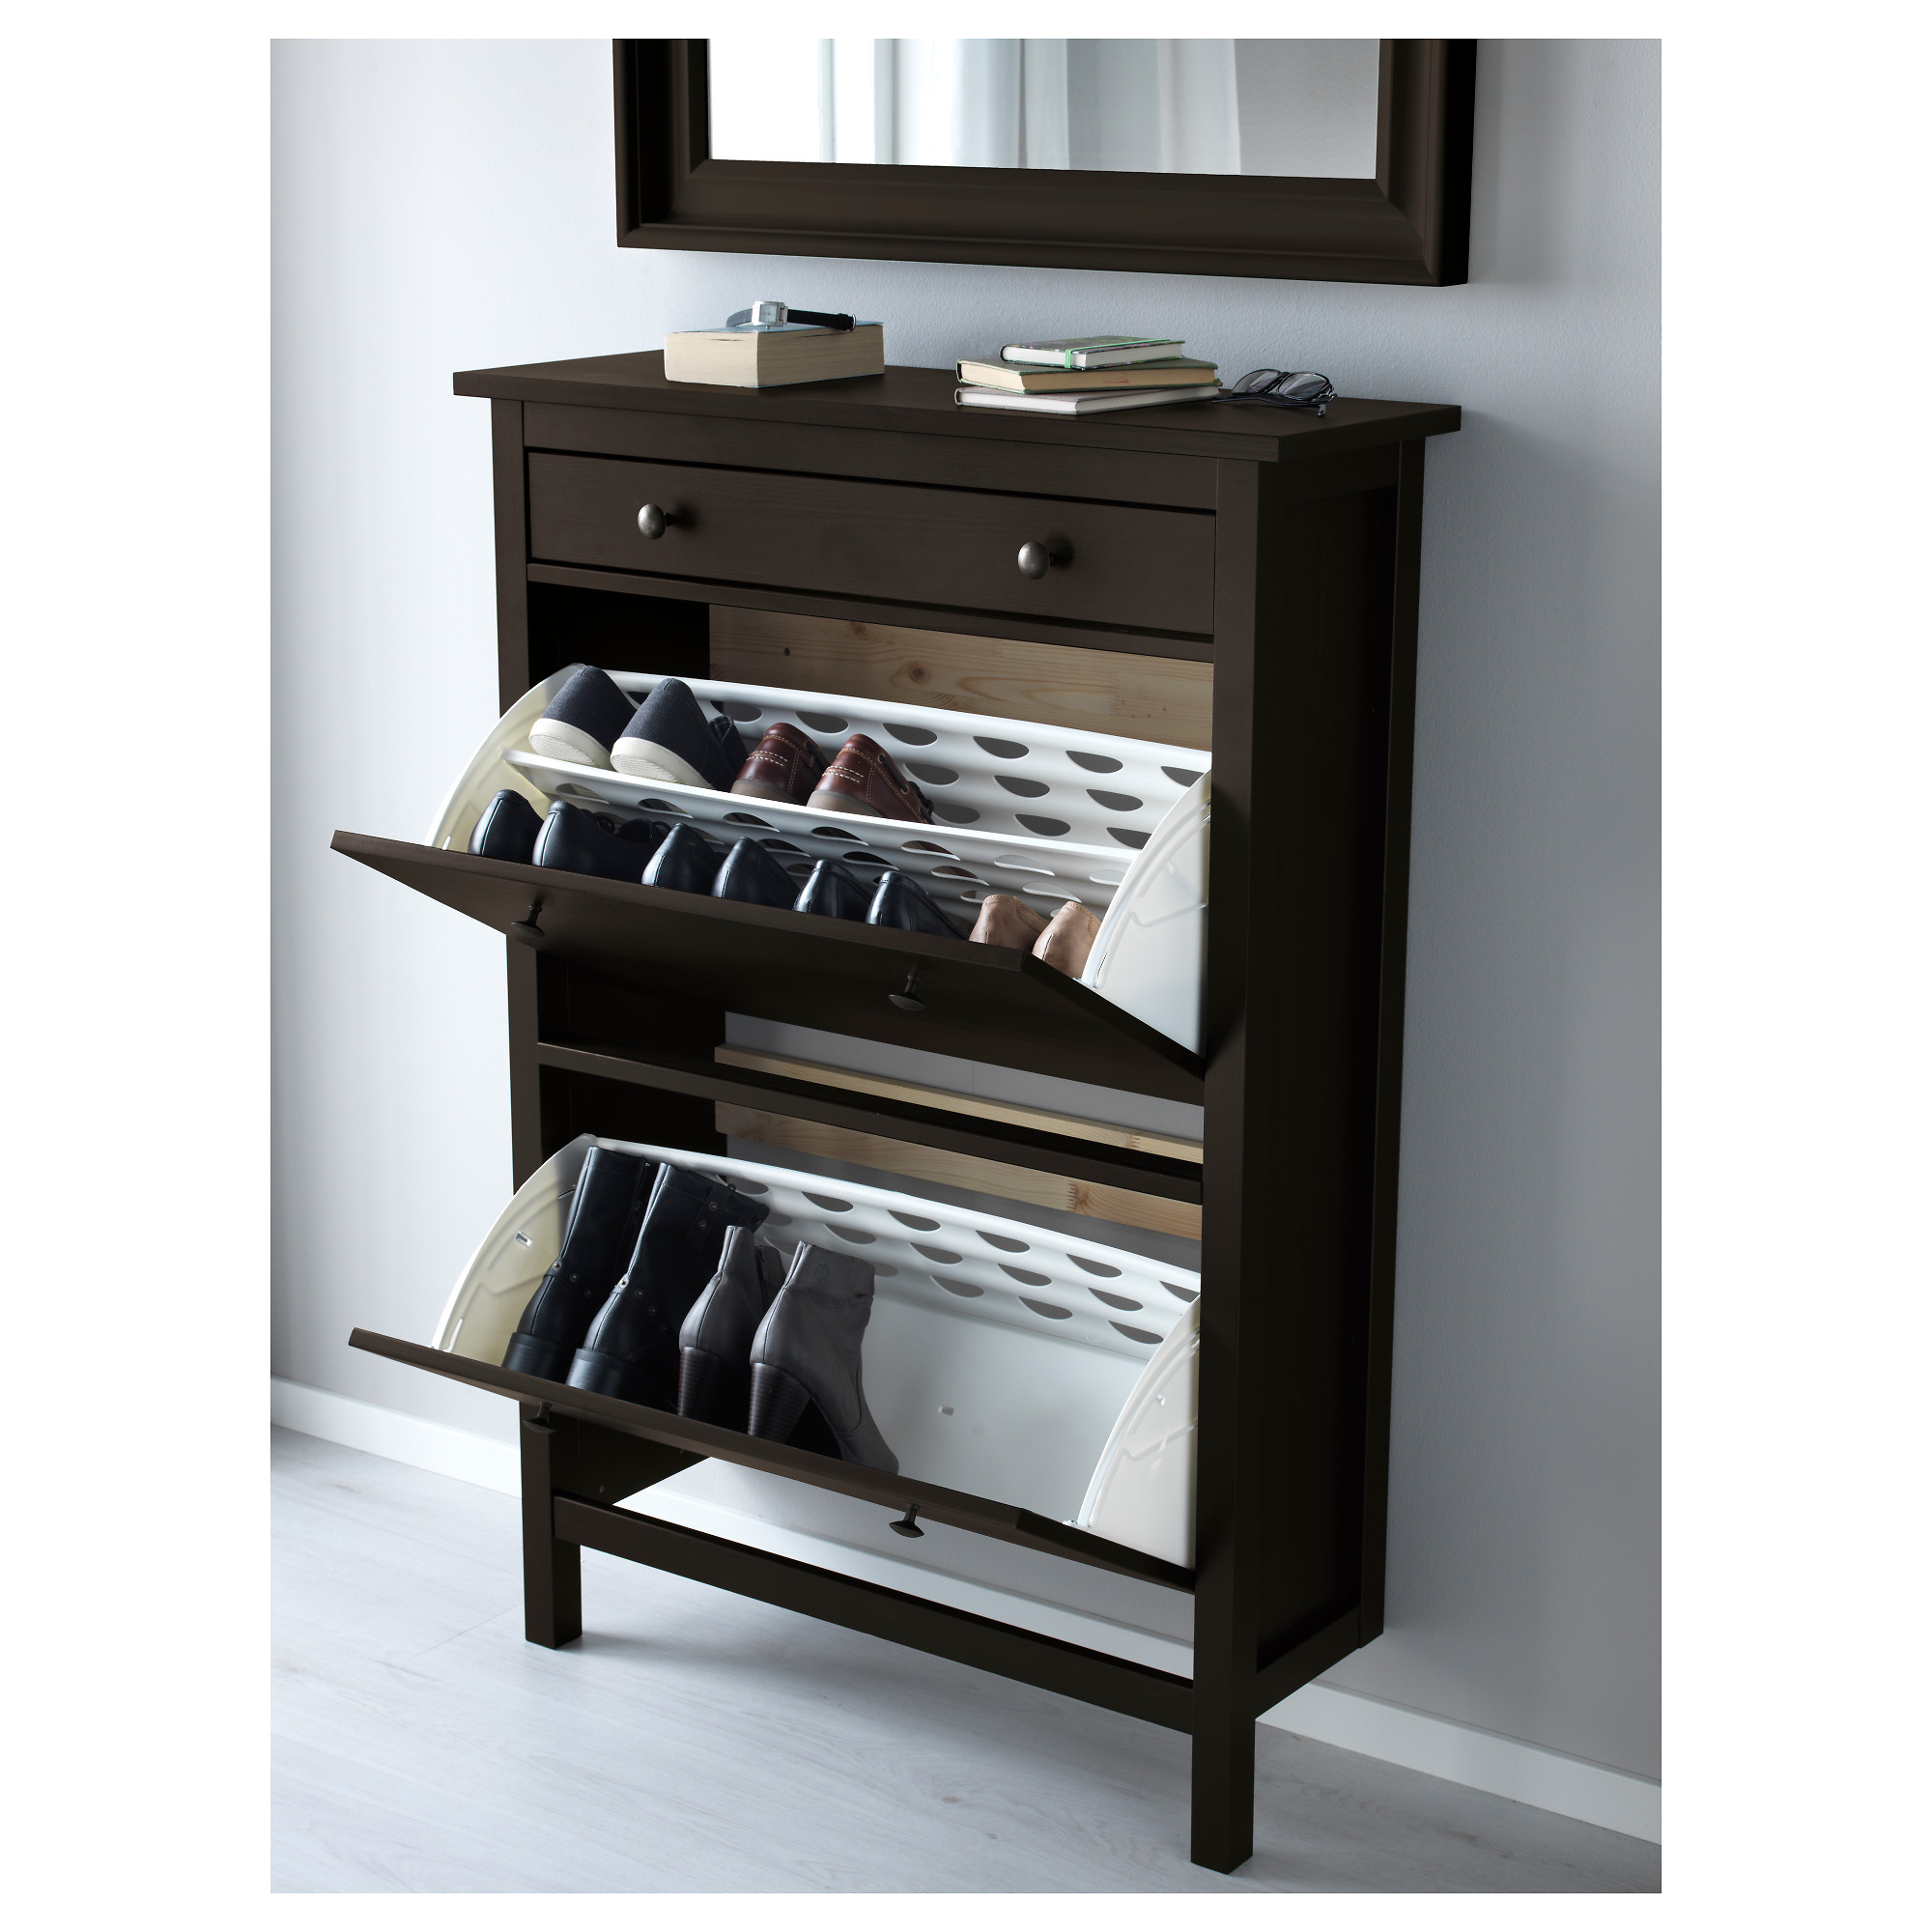 Design Shoe Stand Ikea hemnes shoe cabinet with 2 compartments black brown ikea